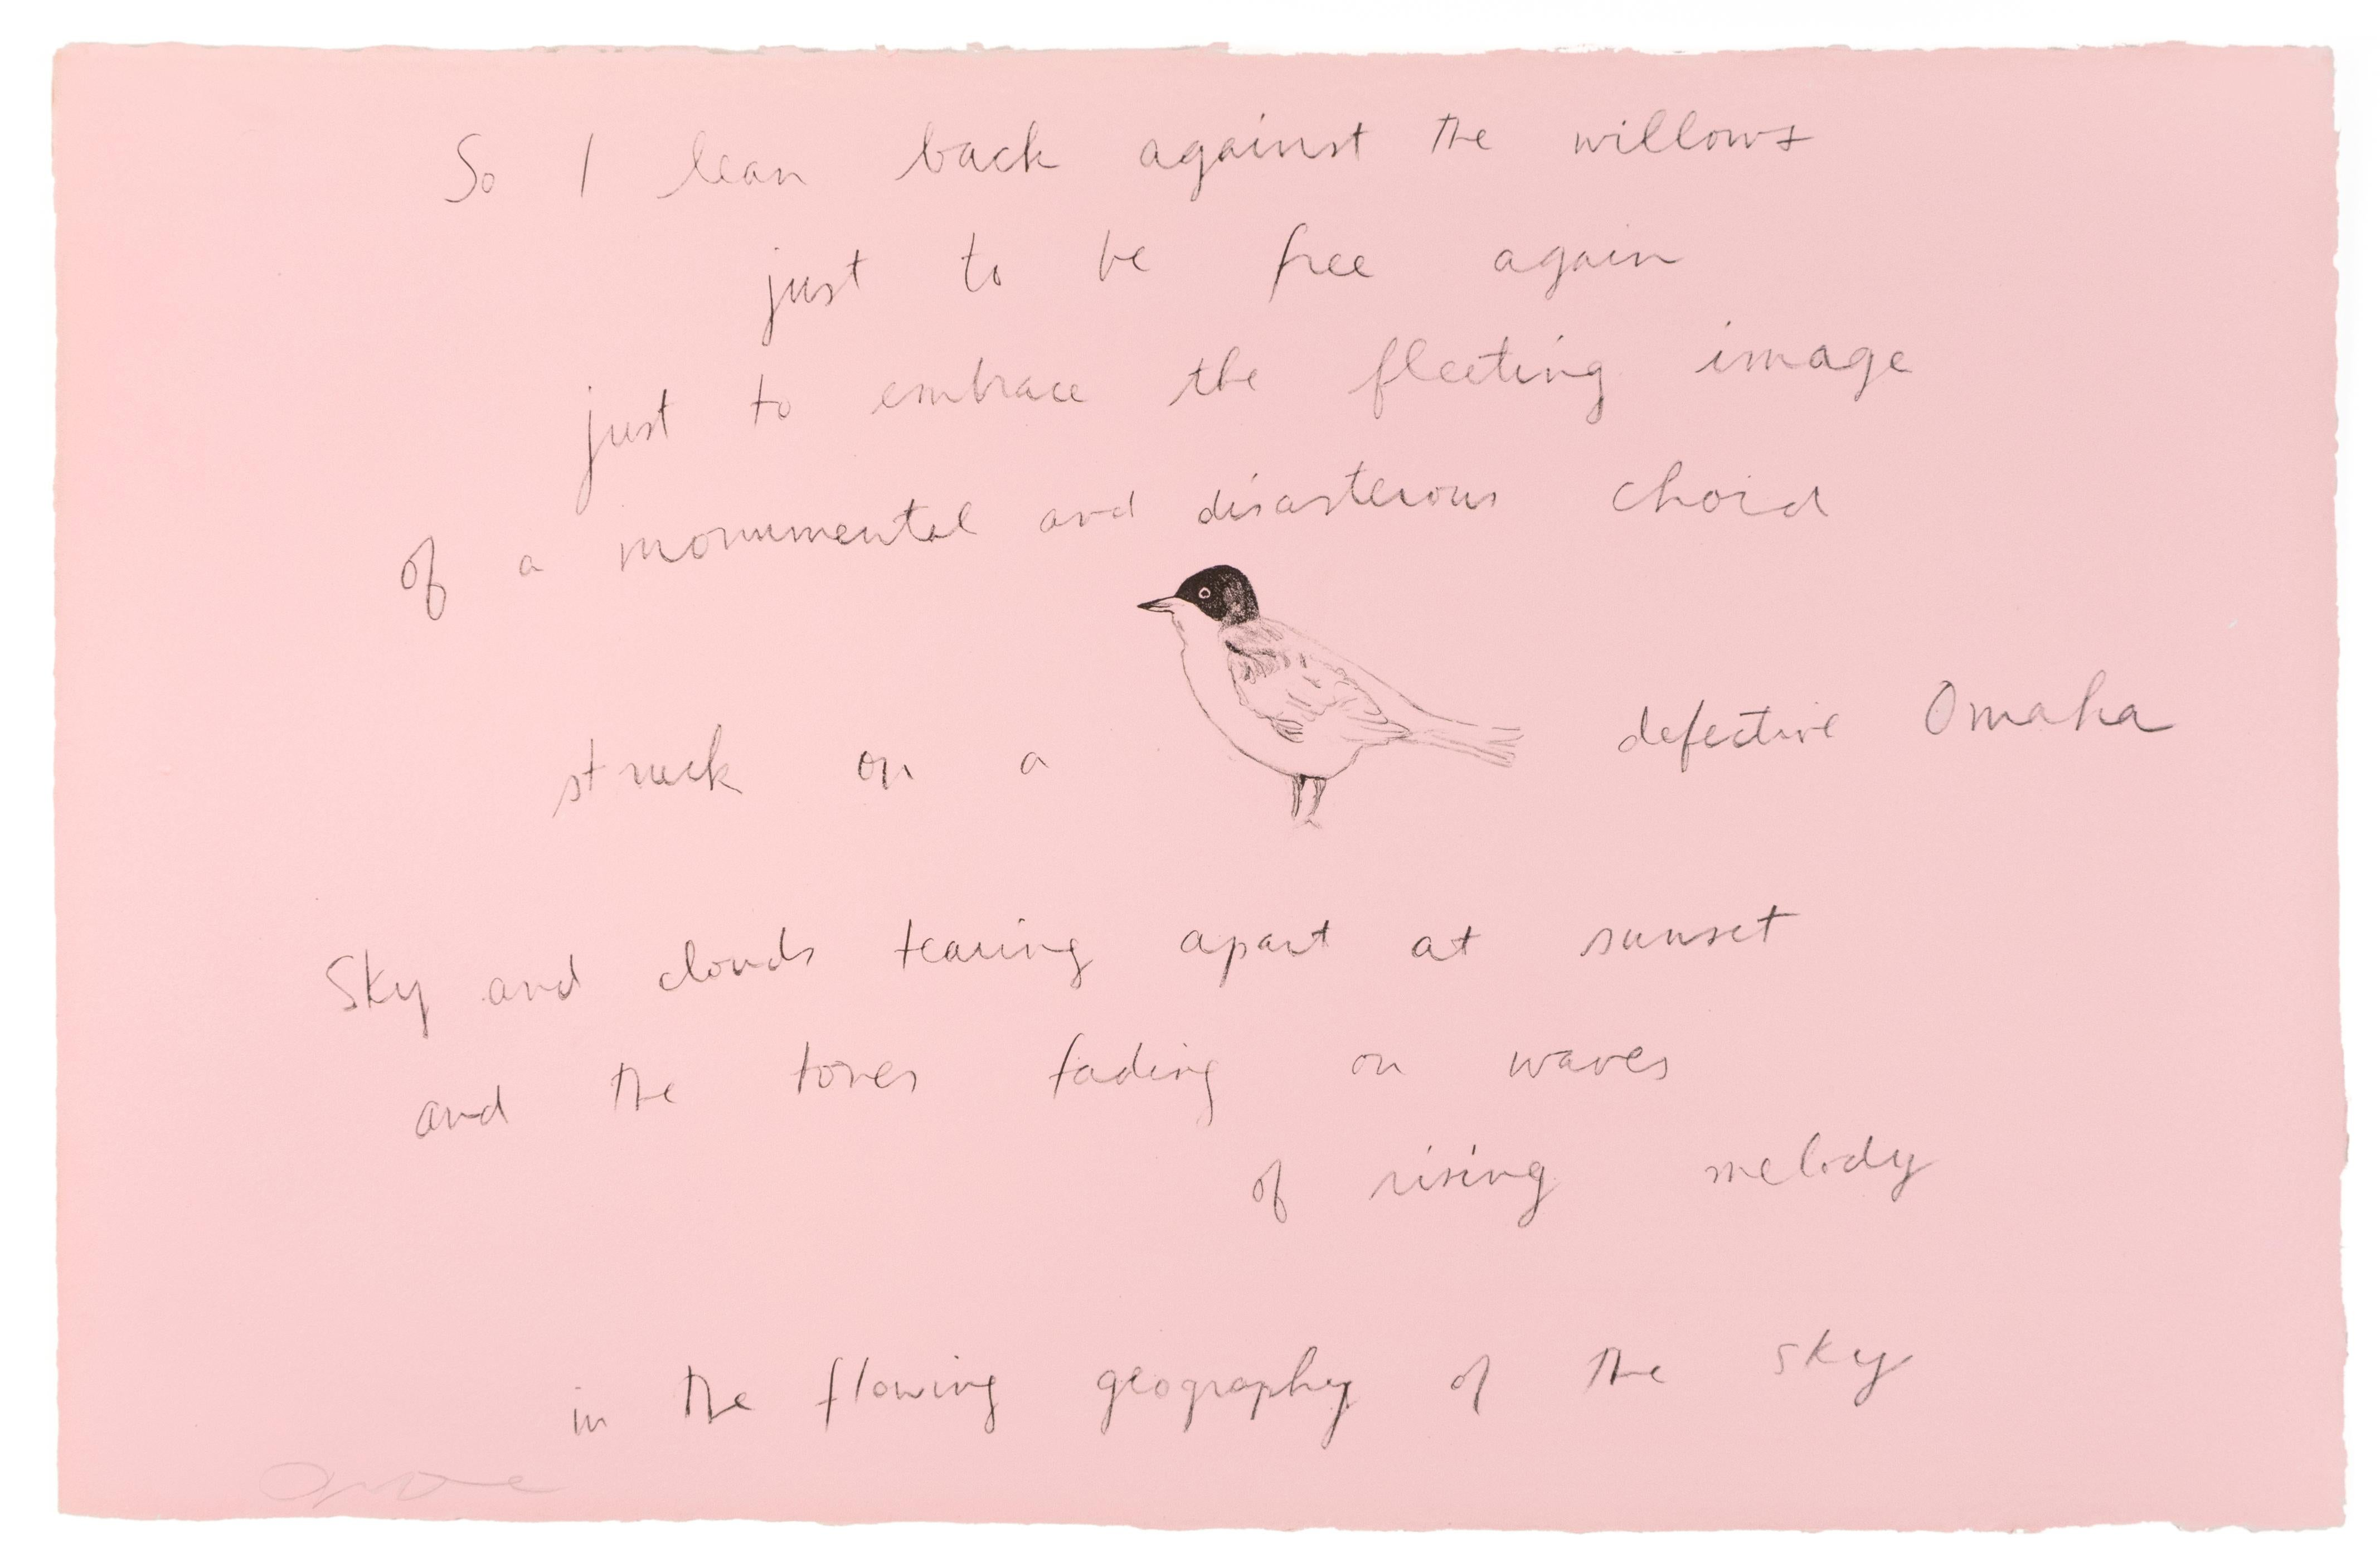 So I lean back (Oo La La) Jim Dine lithograph and Ron Padgett poetry pink bird